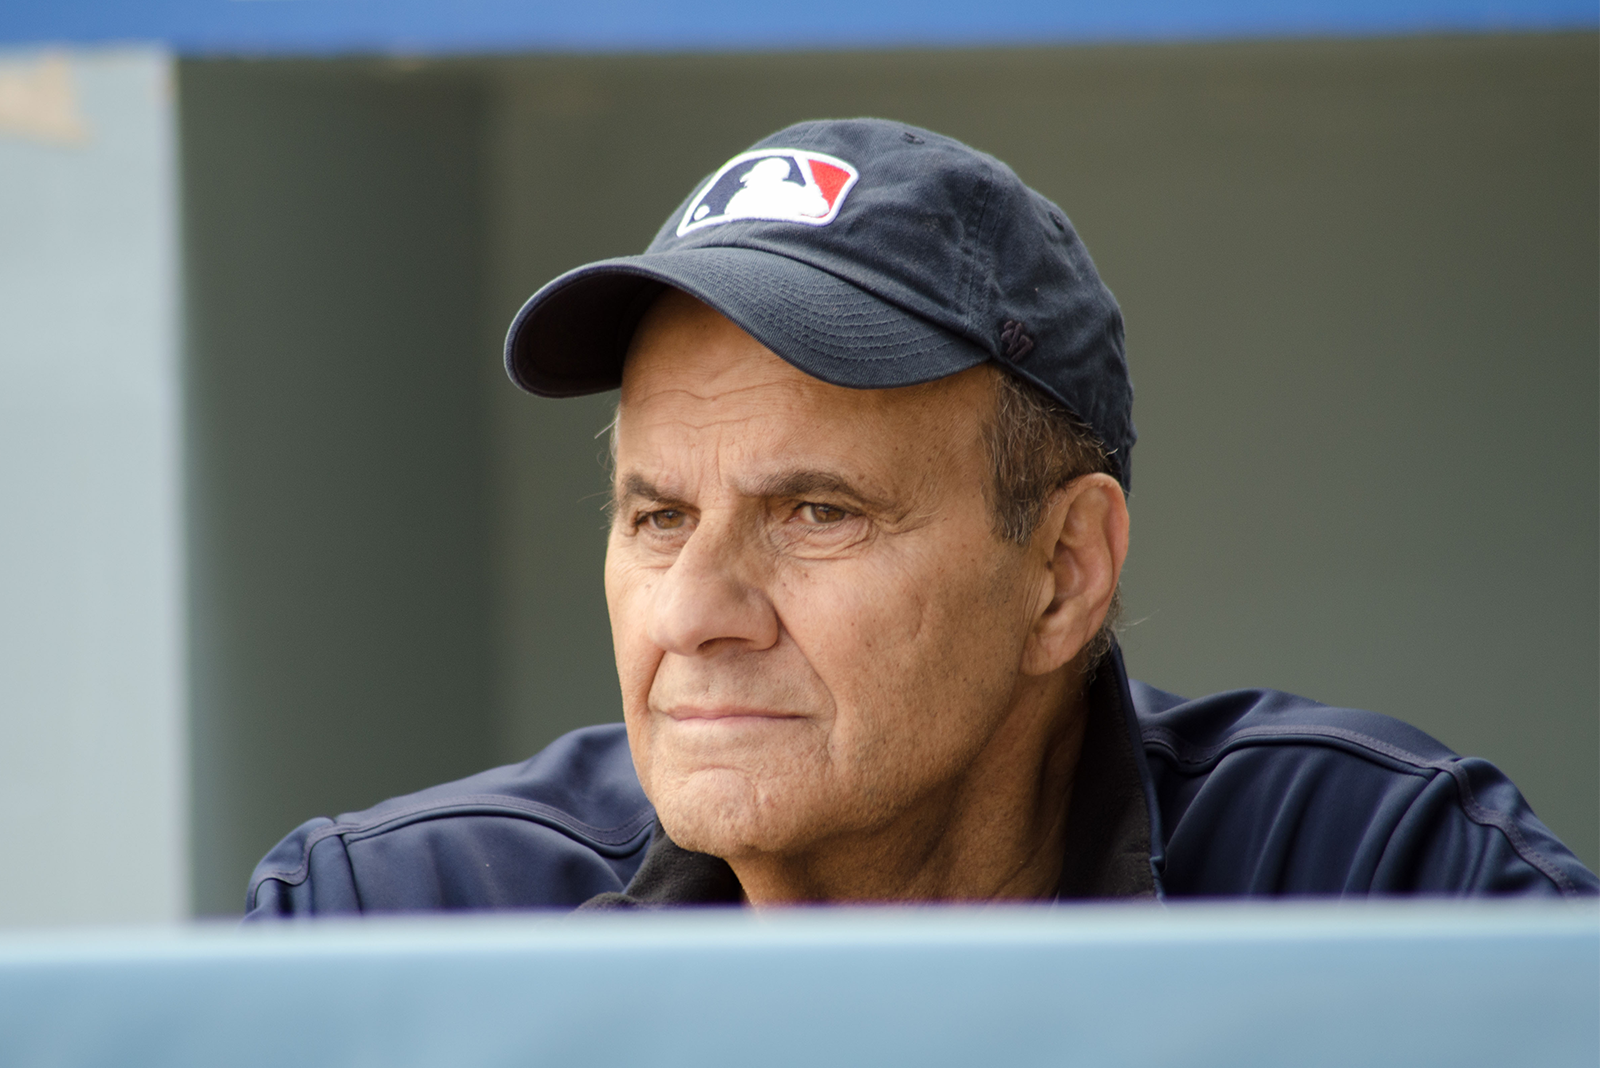 candid photo of prostate cancer survivor and MLB Hall of Famer Joe Torre during prostate cancer PSA video shoot